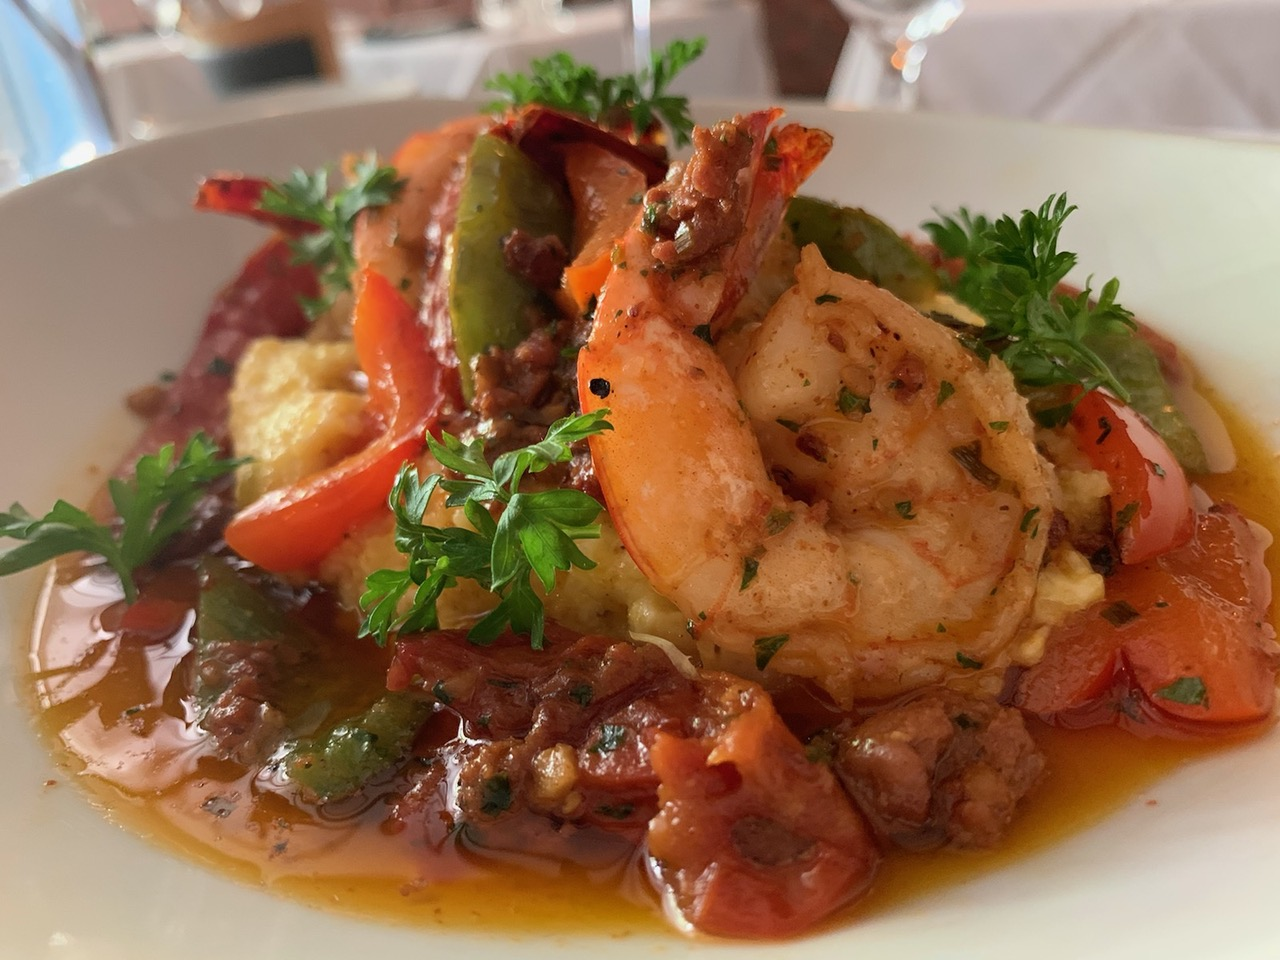 A plate of shrimp and grits